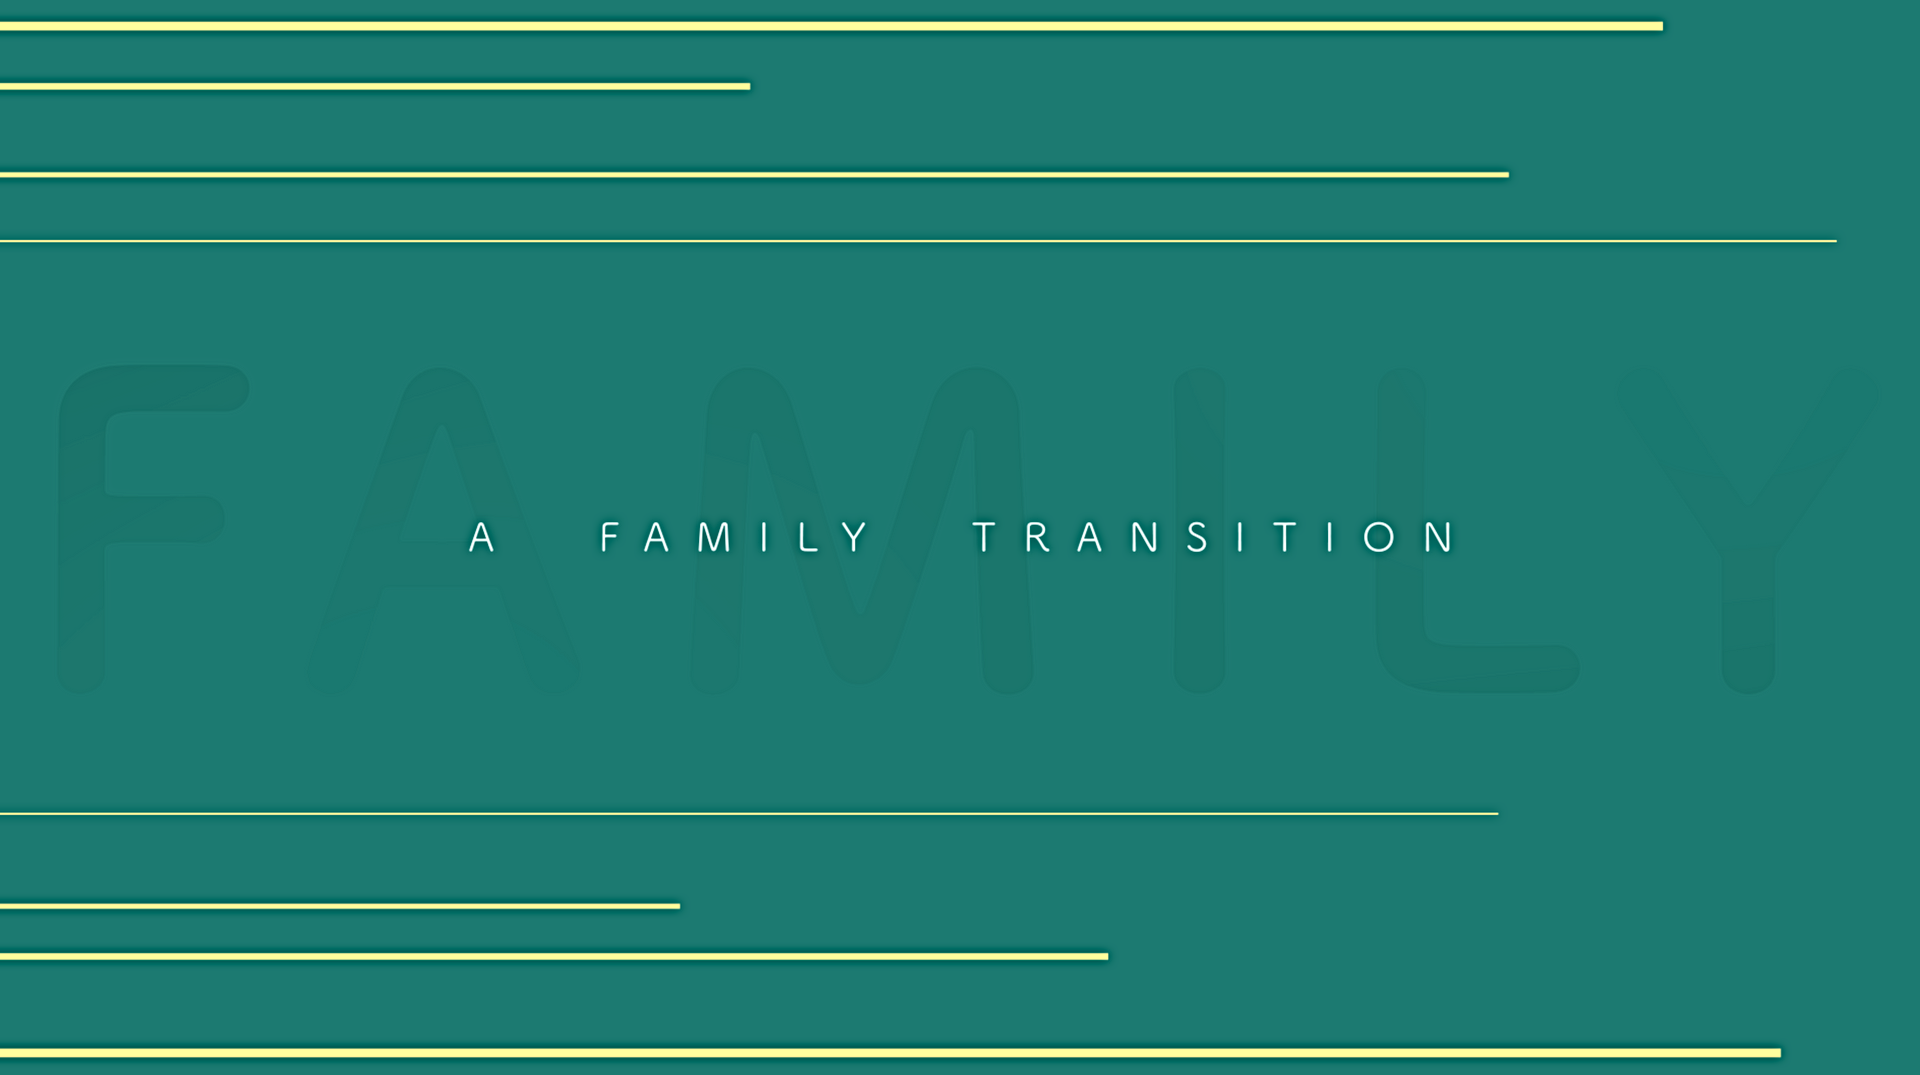 A Family Transition